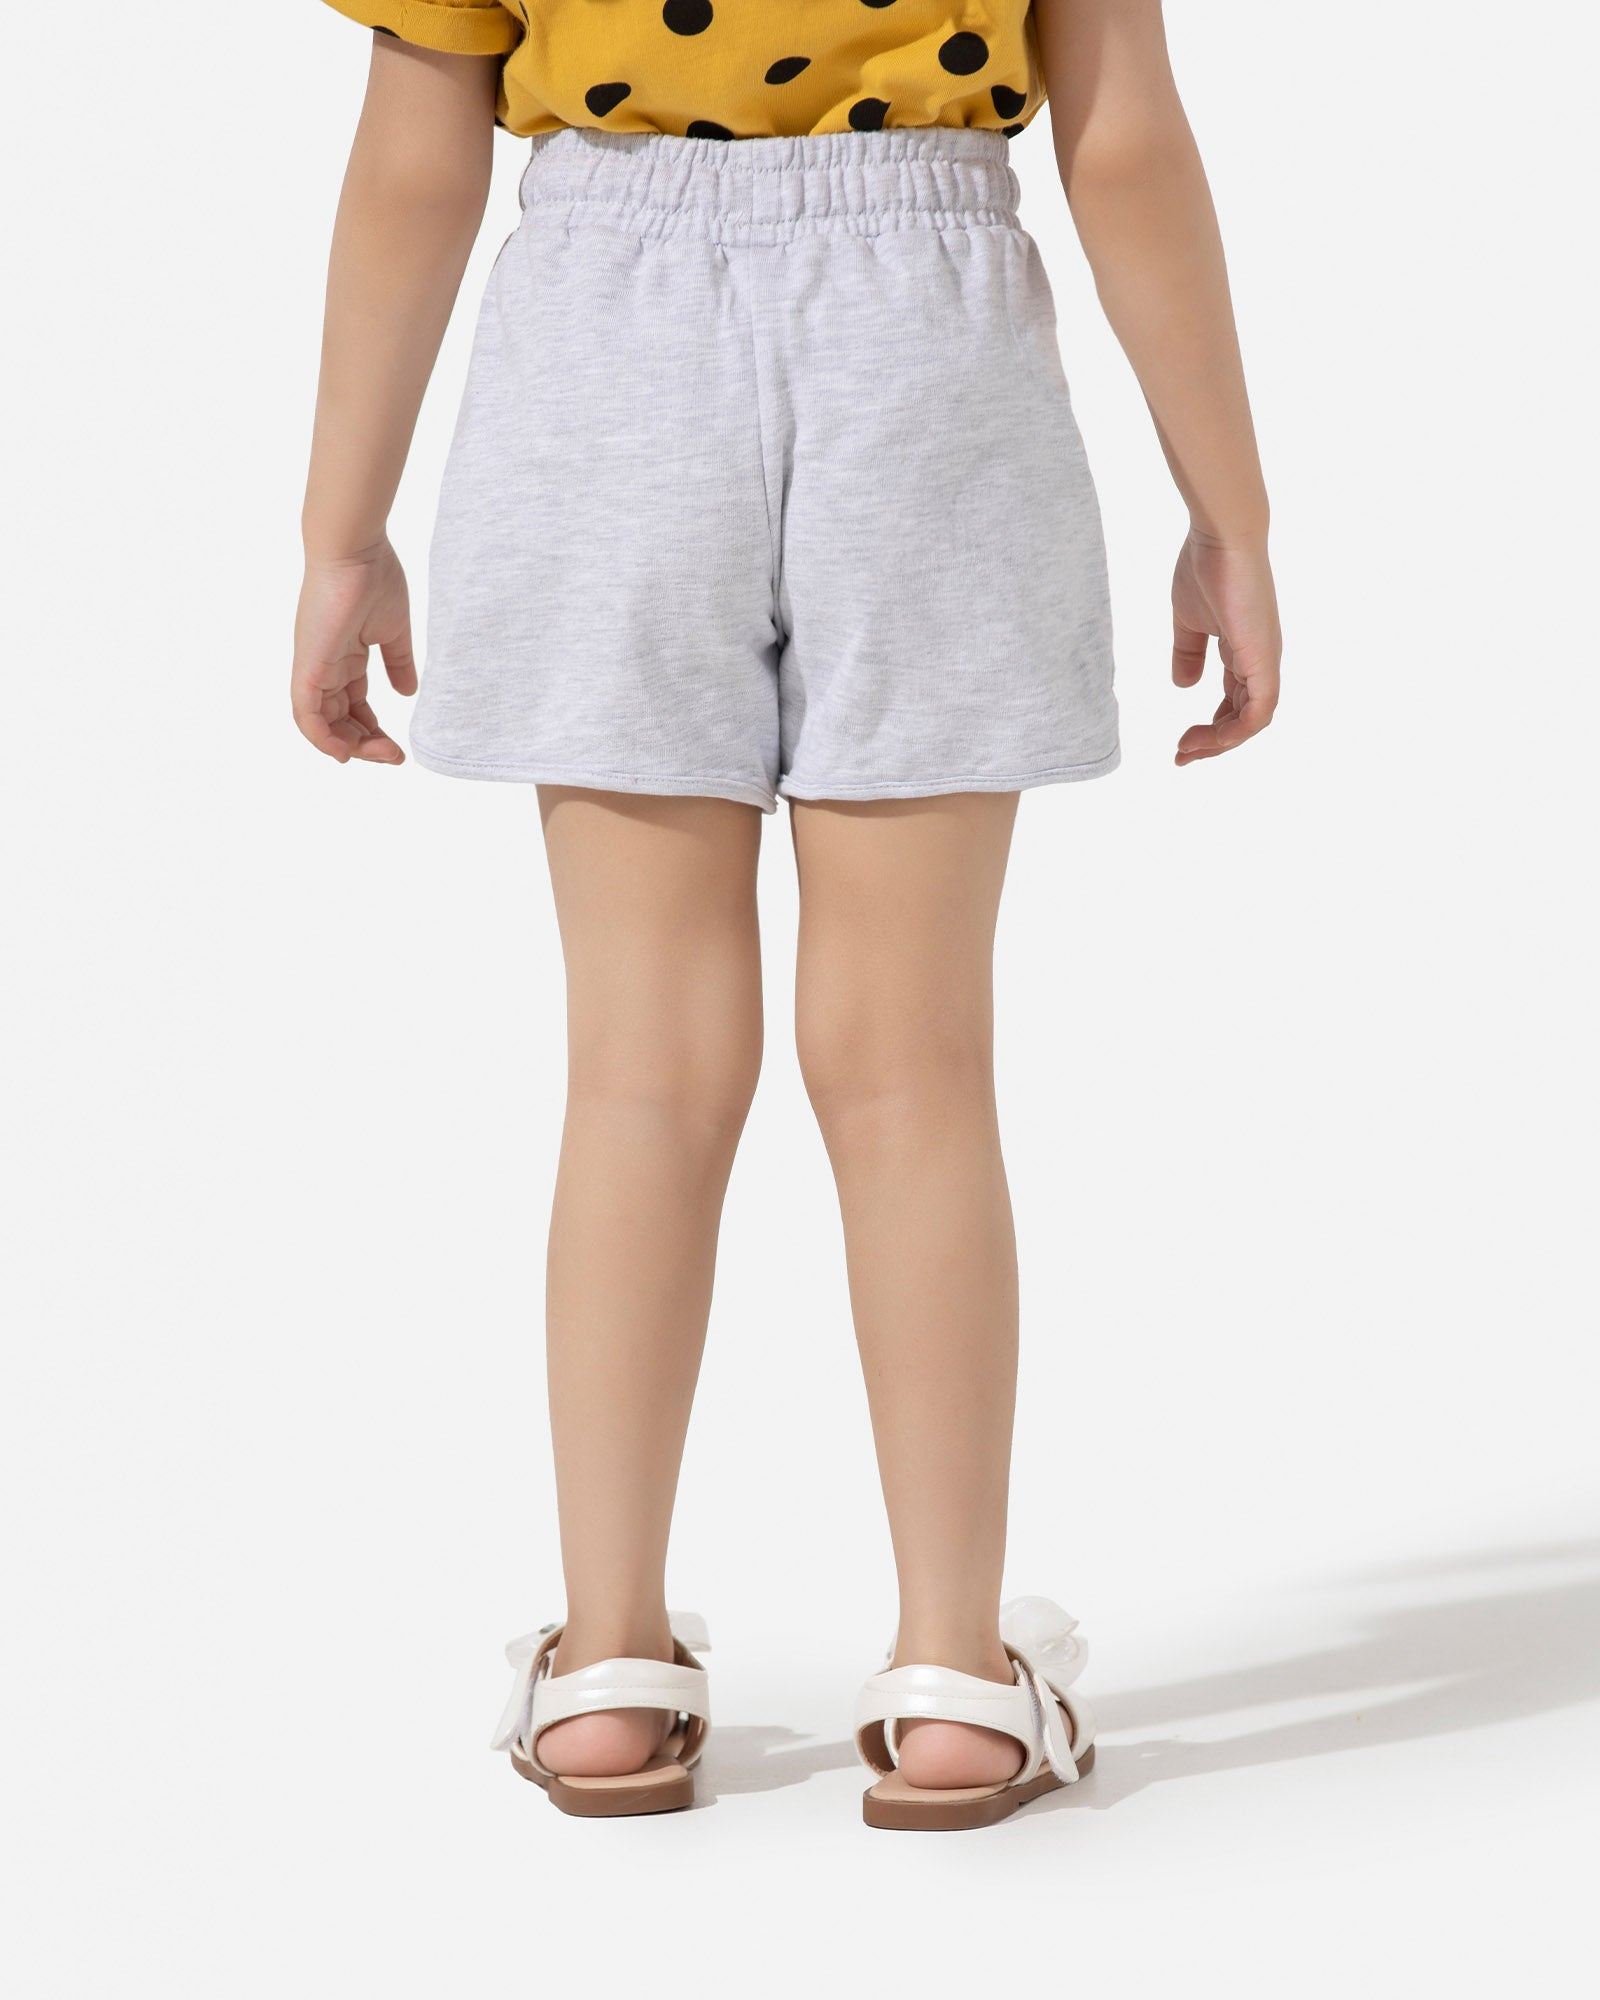 Jersey Shorts with Contrast Tie-up